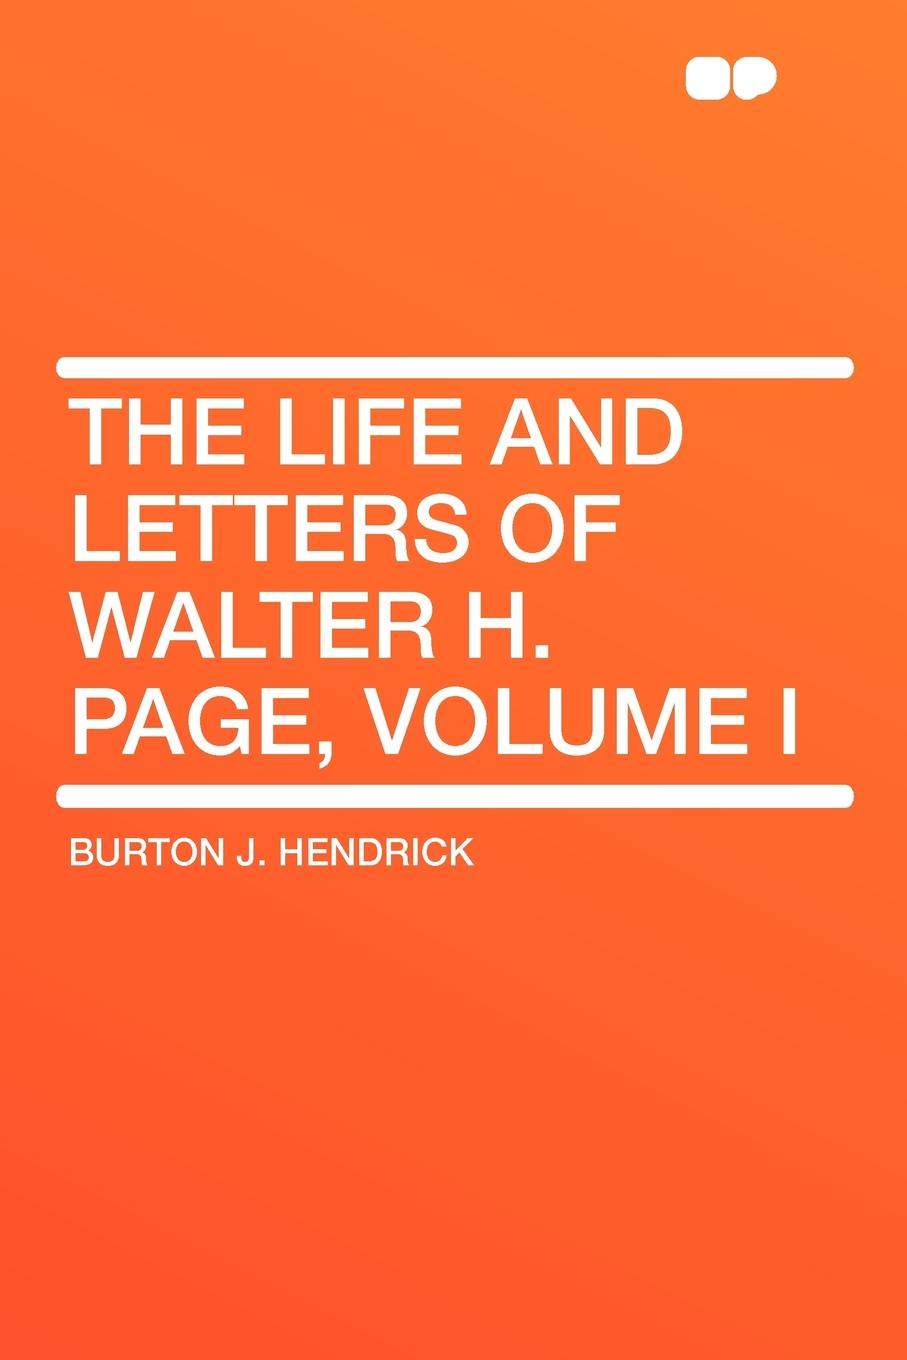 Burton J. Hendrick The Life and Letters of Walter H. Page, Volume I barr amelia e all the days of my life an autobiography page 5 page 10 page 8